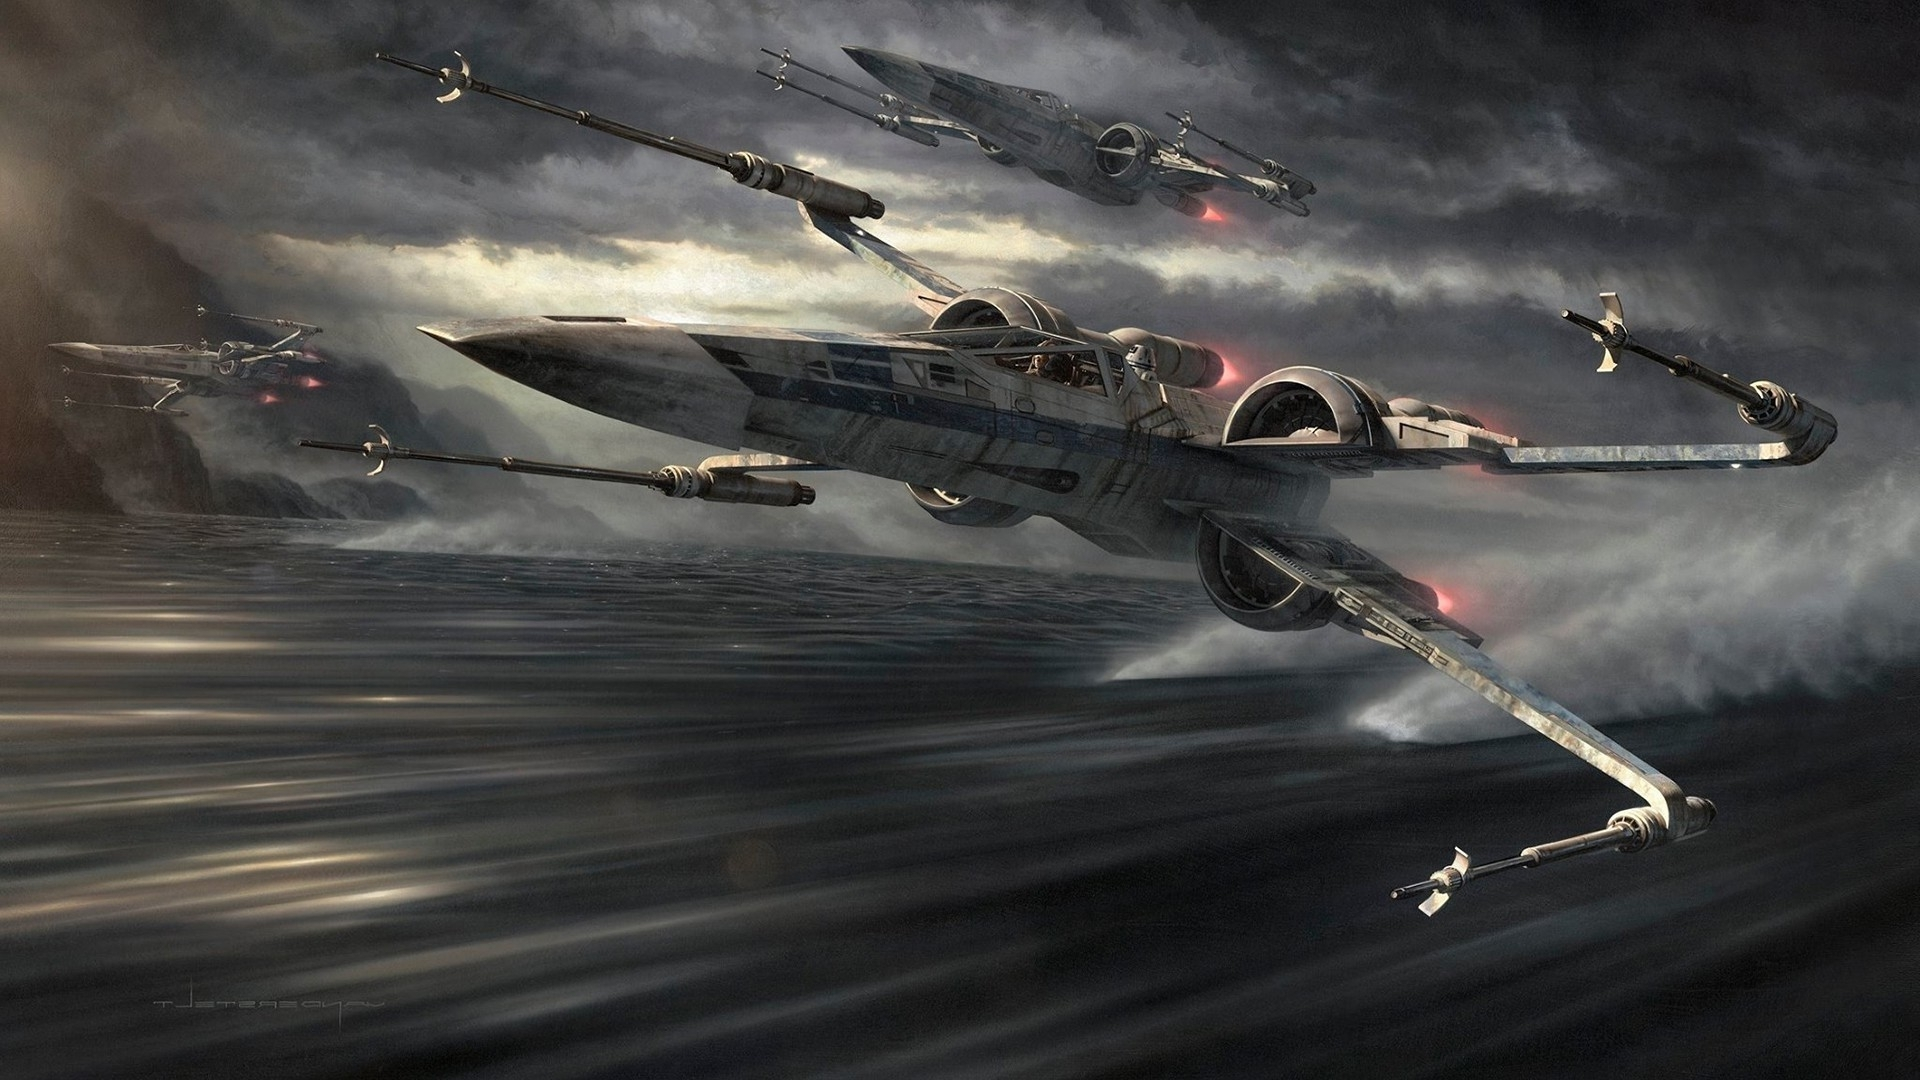 10 Latest X Wing Wallpaper Hd FULL HD 1920×1080 For PC Background